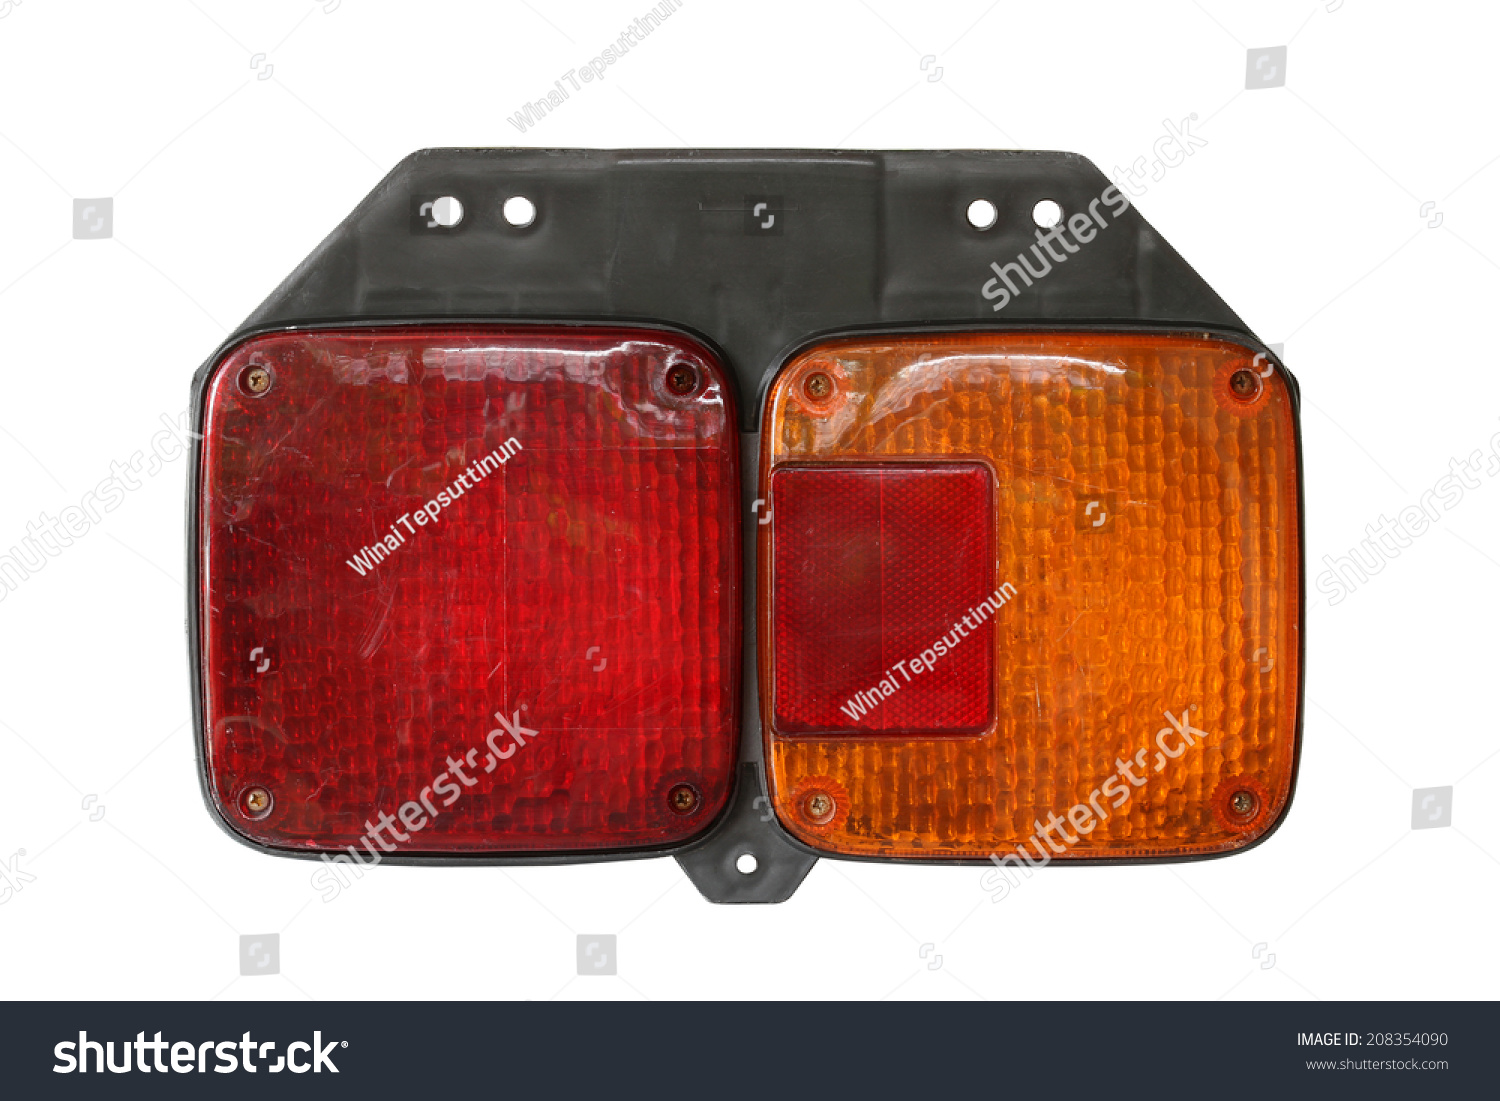 Tail Light Truck Isolated On White Stock Photo (Royalty Free ... for Truck Light Texture  257ylc